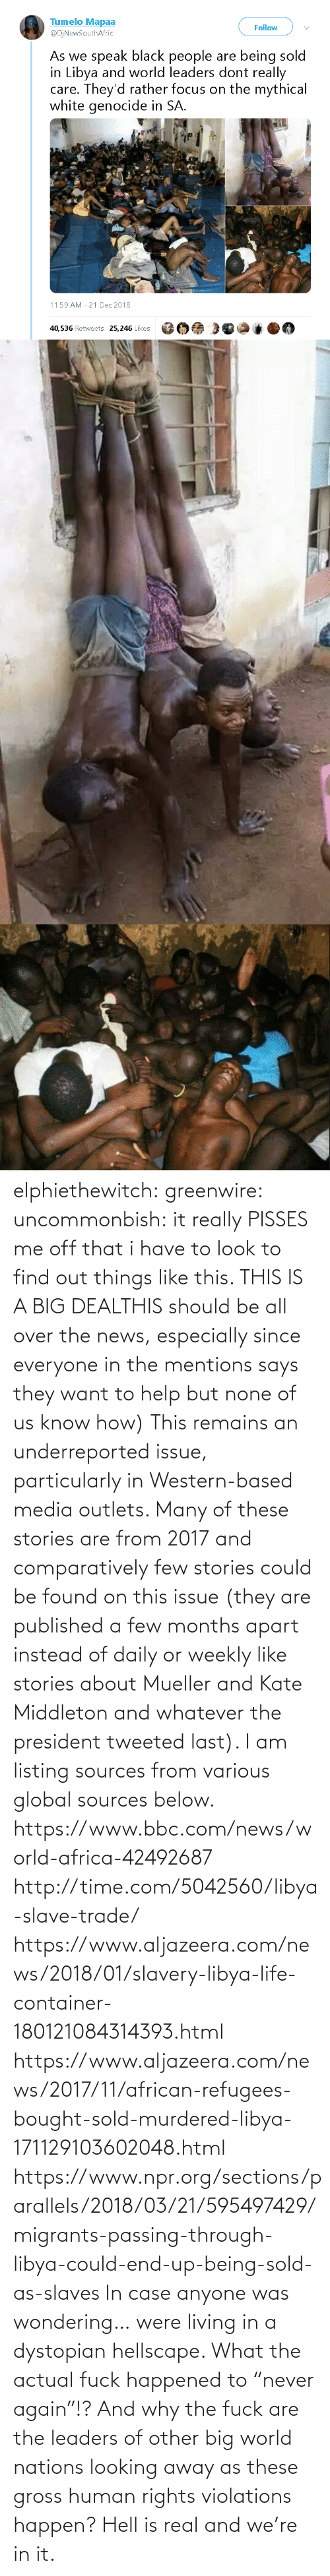 "Find Out: elphiethewitch: greenwire:  uncommonbish:  it really PISSES me off that i have to look to find out things like this. THIS IS A BIG DEALTHIS should be all over the news, especially since everyone in the mentions says they want to help but none of us know how)  This remains an underreported issue, particularly in Western-based media outlets. Many of these stories are from 2017 and comparatively few stories could be found on this issue (they are published a few months apart instead of daily or weekly like stories about Mueller and Kate Middleton and whatever the president tweeted last). I am listing sources from various global sources below.  https://www.bbc.com/news/world-africa-42492687 http://time.com/5042560/libya-slave-trade/ https://www.aljazeera.com/news/2018/01/slavery-libya-life-container-180121084314393.html https://www.aljazeera.com/news/2017/11/african-refugees-bought-sold-murdered-libya-171129103602048.html https://www.npr.org/sections/parallels/2018/03/21/595497429/migrants-passing-through-libya-could-end-up-being-sold-as-slaves   In case anyone was wondering… were living in a dystopian hellscape.  What the actual fuck happened to ""never again""!? And why the fuck are the leaders of other big world nations looking away as these gross human rights violations happen?  Hell is real and we're in it."